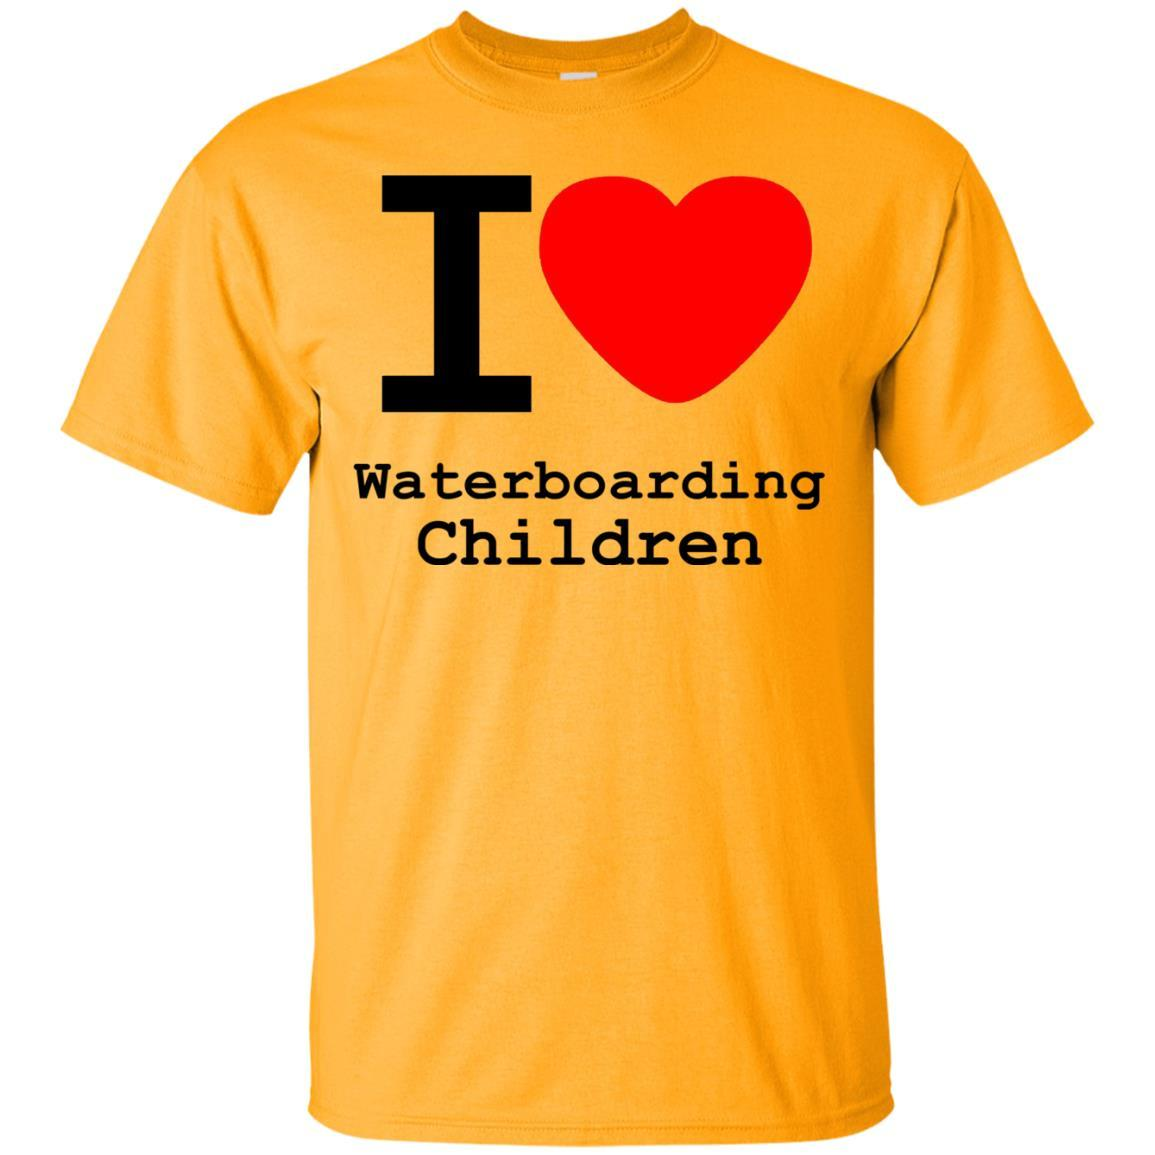 I love Waterboarding Children T-Shirt Gold / 5XL